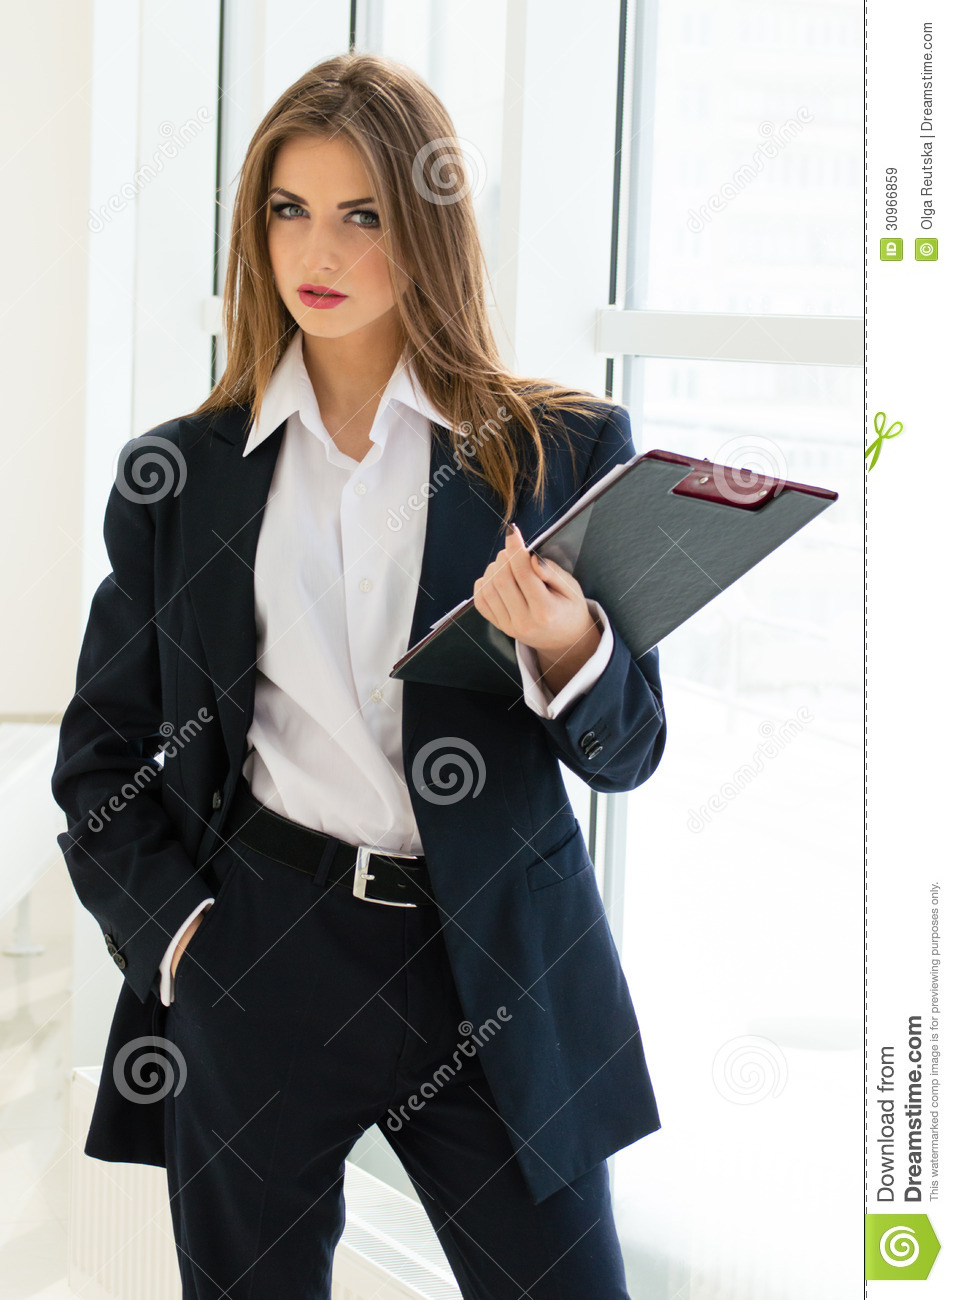 Businesswoman In Man S Suit Amp Shirt Writing With Pen At